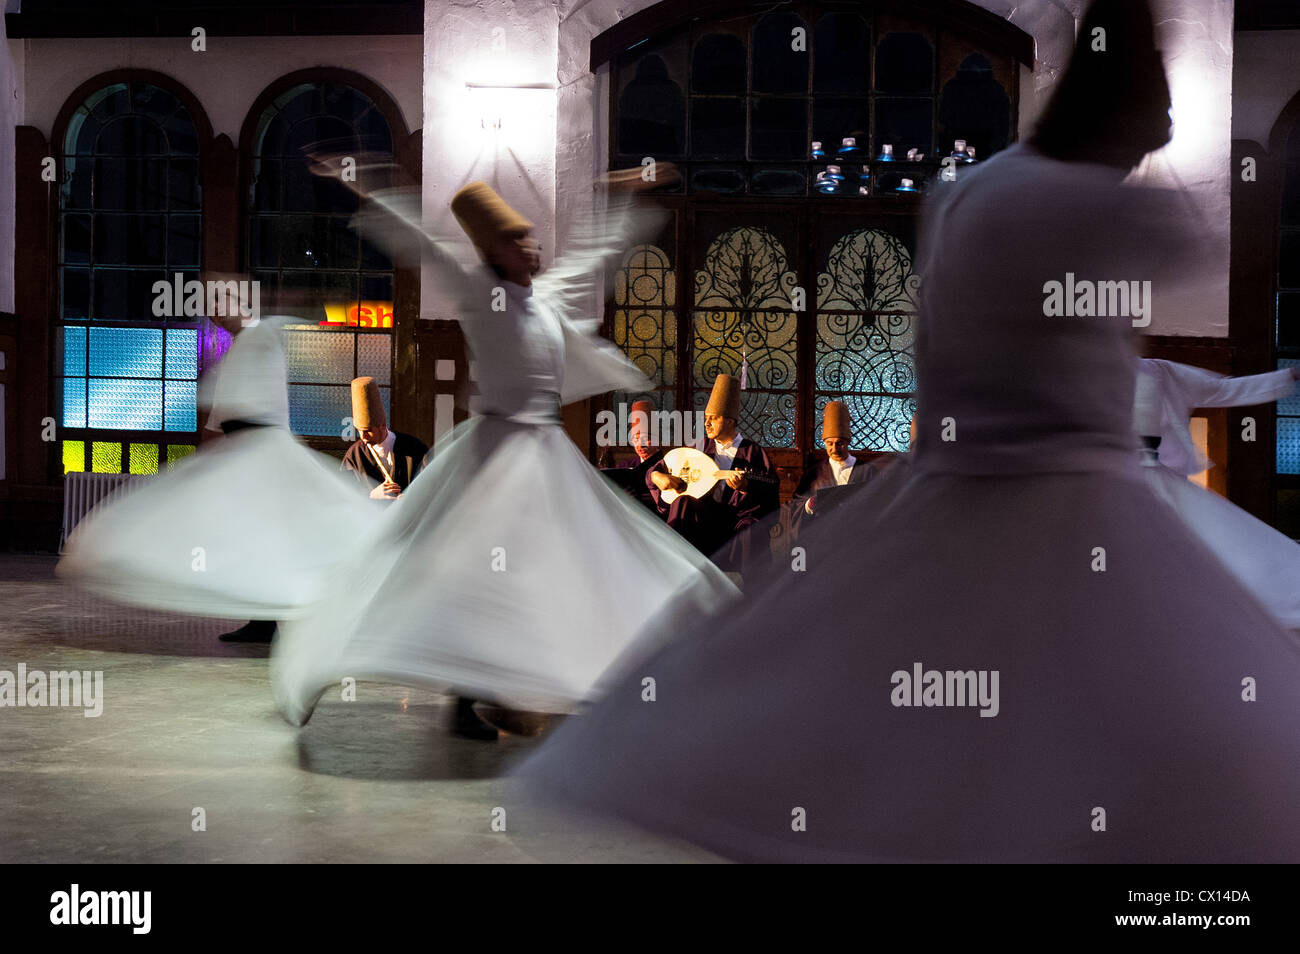 Whirling dervishes perform to visitors in the event hall of Sirkeci Train Station on October 21, 2005 in Istanbul, - Stock Image